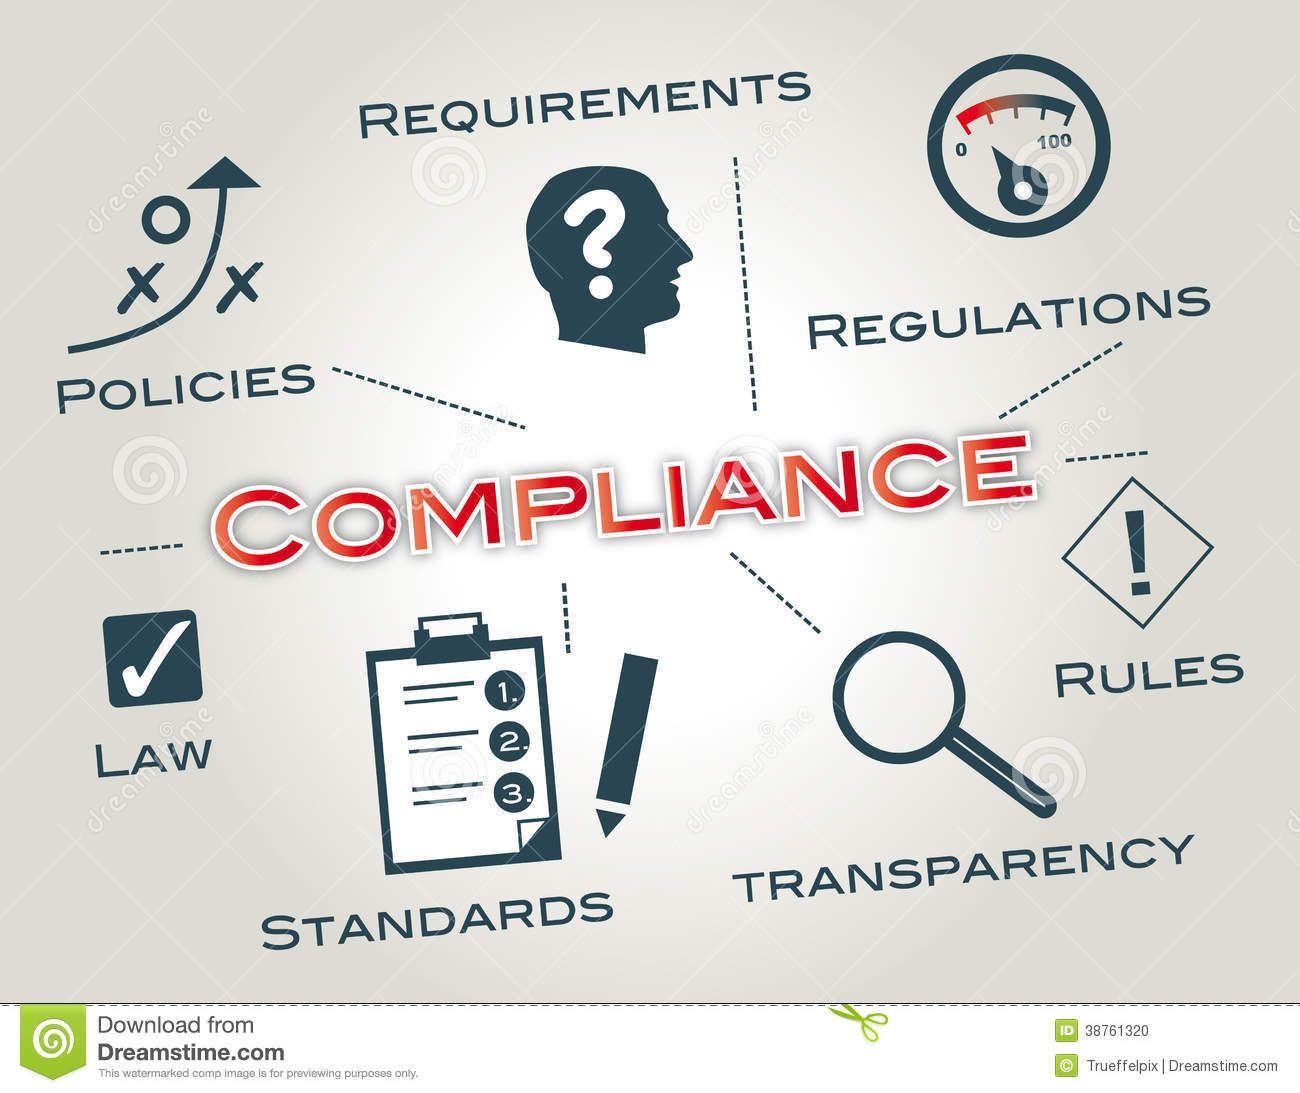 Compliance Regulatory Compliance In General Compliance Means Conforming To A Sponsored Spons Regulatory Compliance Document Management System Compliance